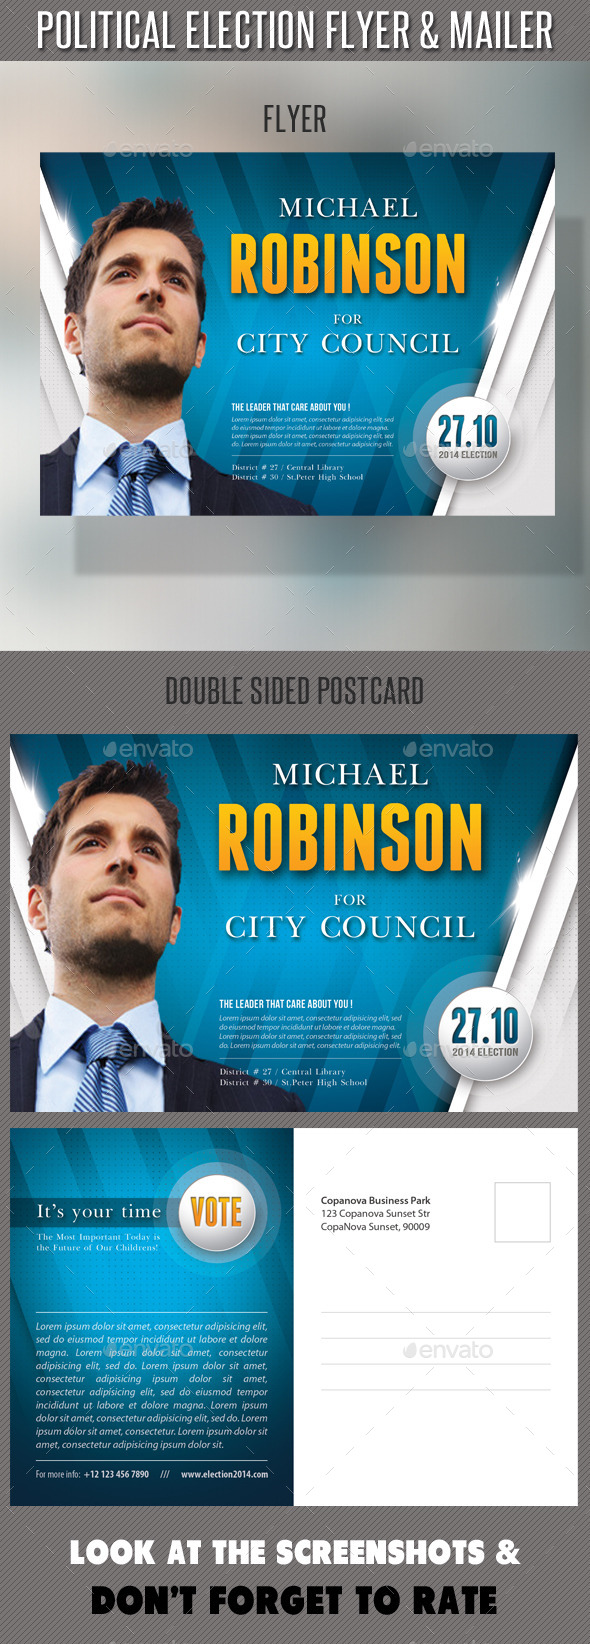 Political Election Flyer and Mailer Template by rapidgraf ...